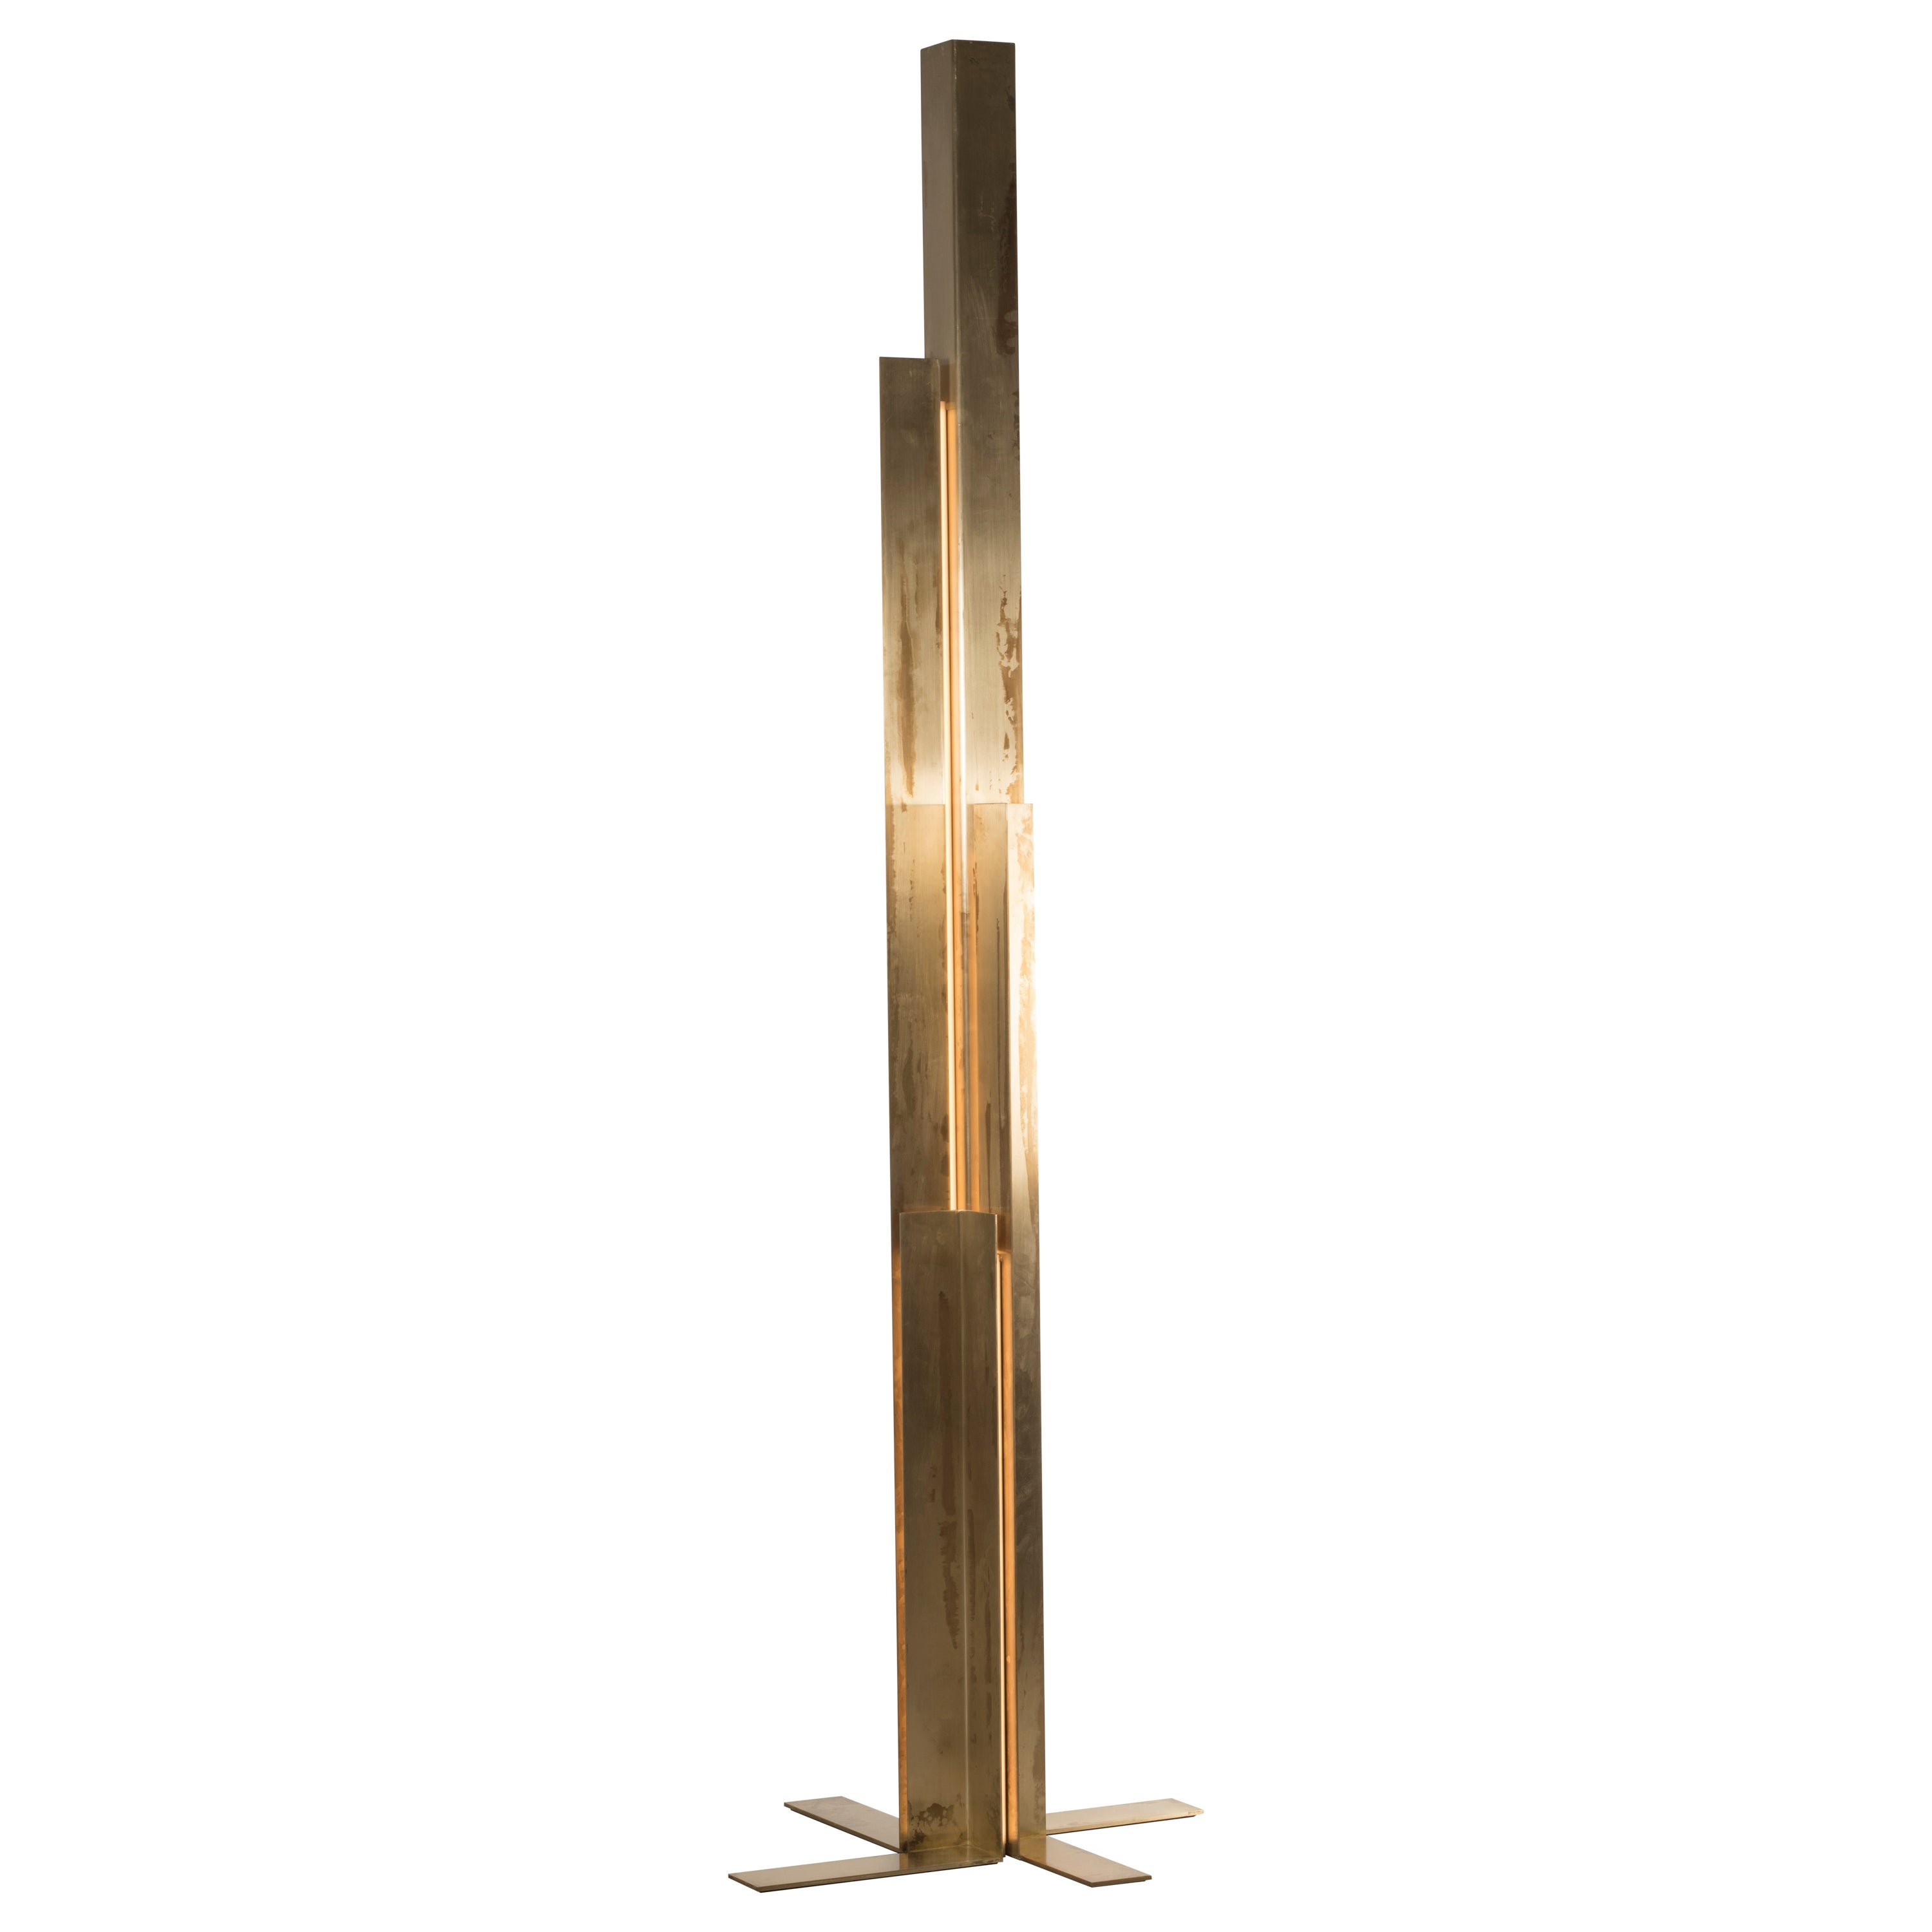 Nilufar Gallery Floor Lamp by Nicolini Bertocco